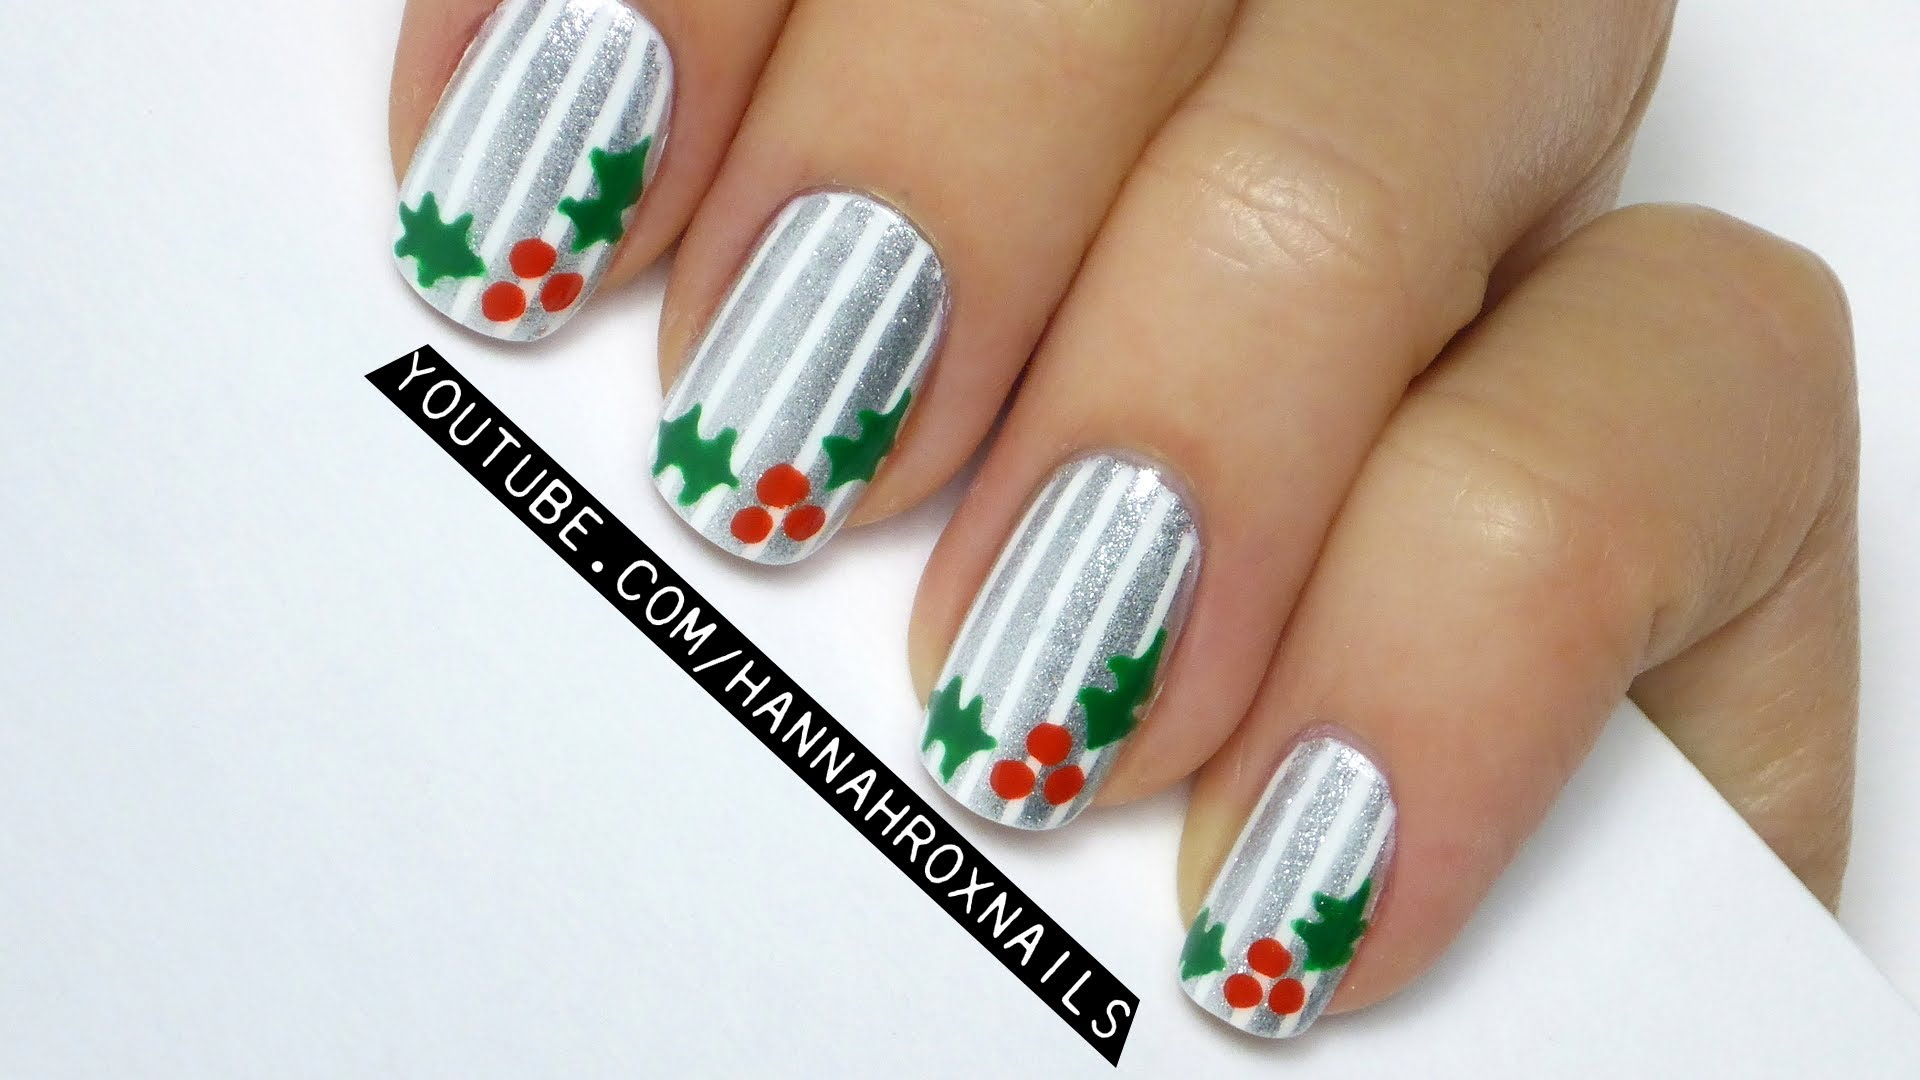 Graduation hat nail art nail art ideas top 51 most beautiful christmas nail art ideas for you to try prinsesfo Image collections